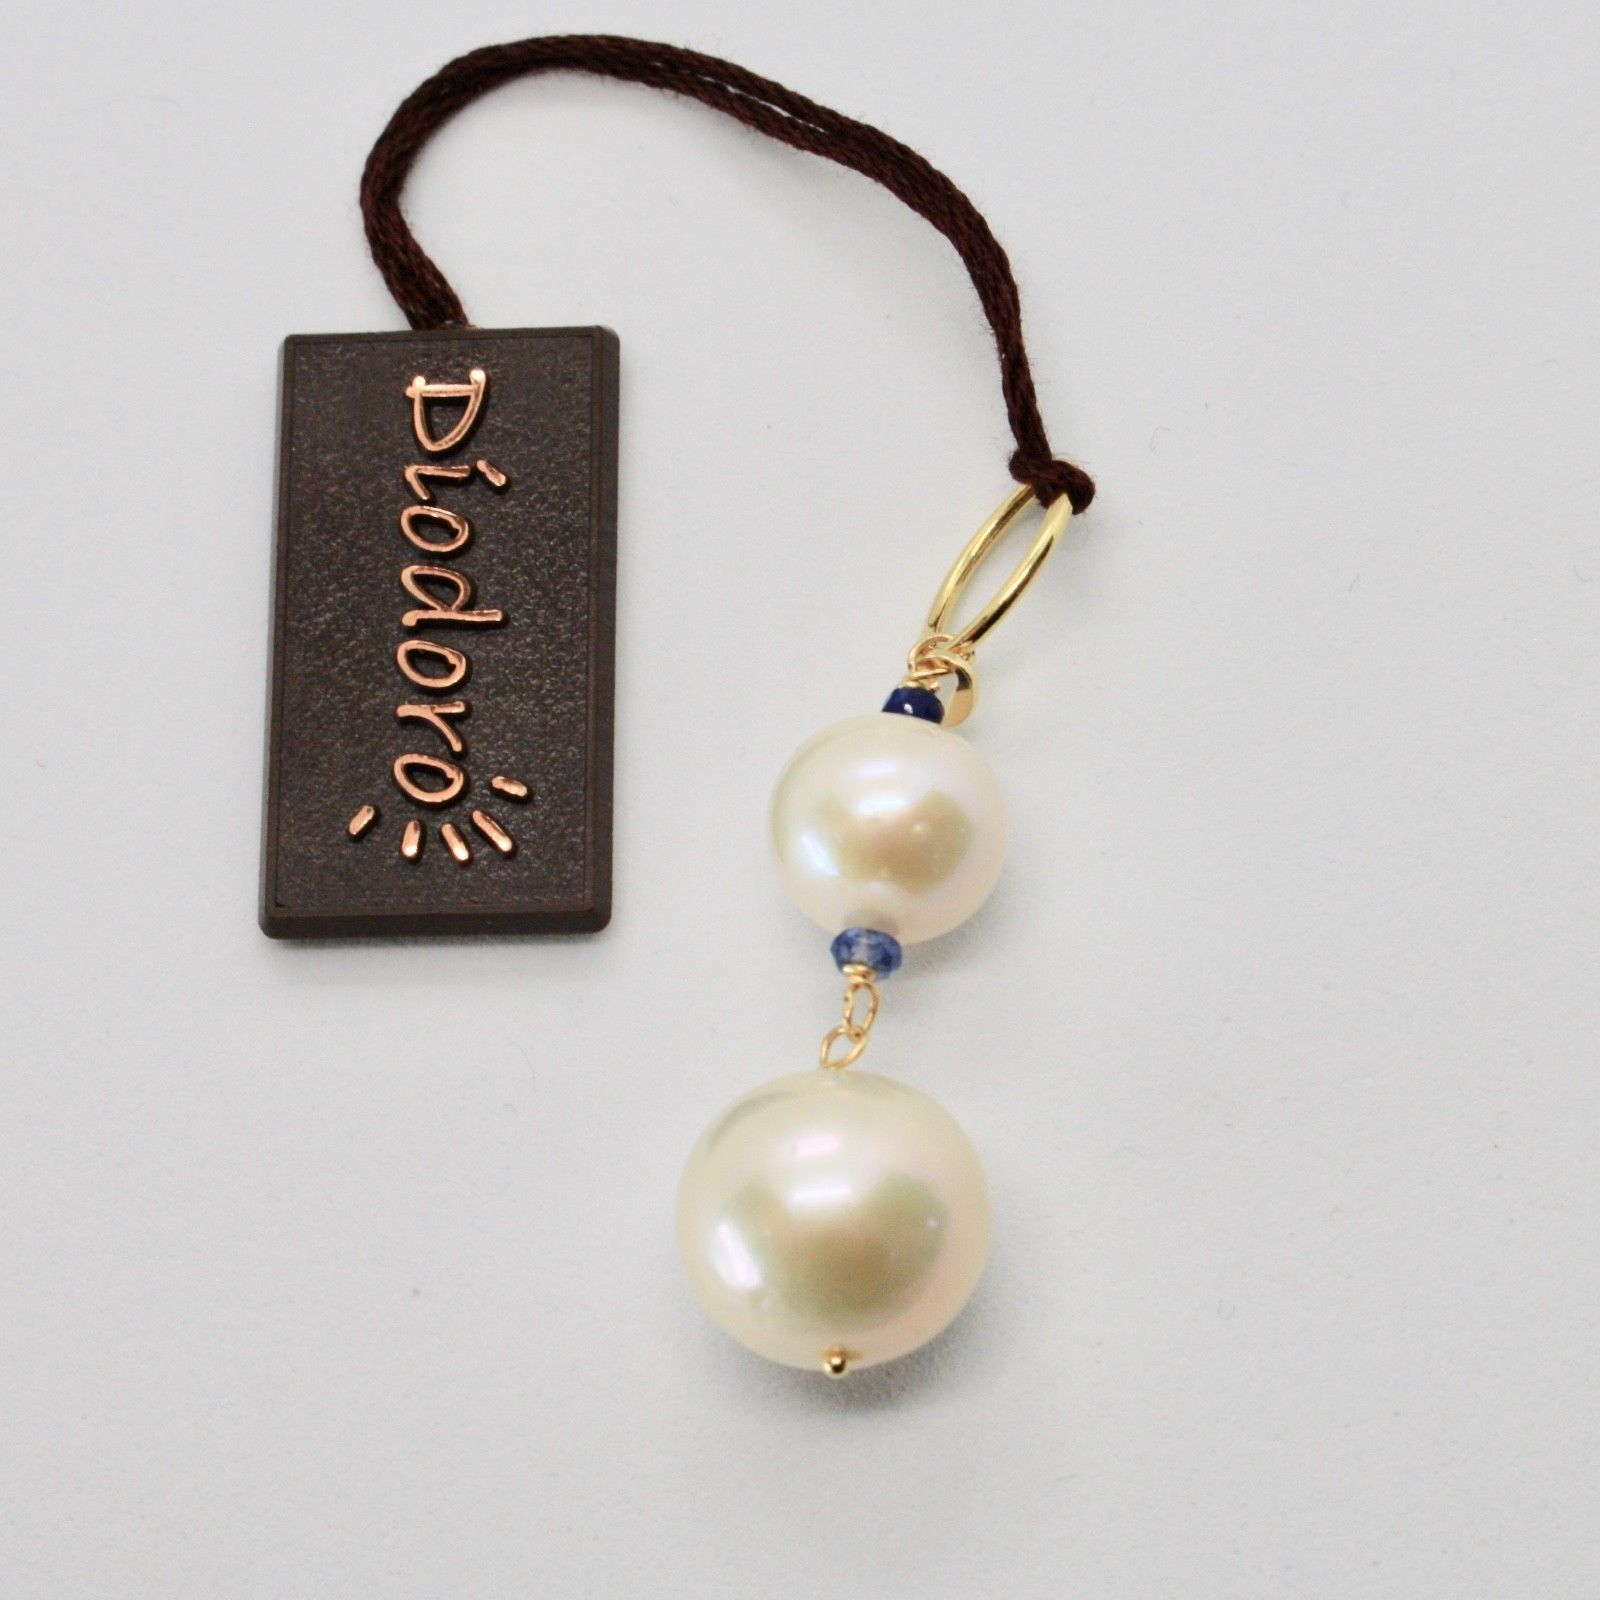 PENDANT YELLOW GOLD 18KT WITH WHITE PEARLS FRESH WATER AND SAPPHIRES NATURAL